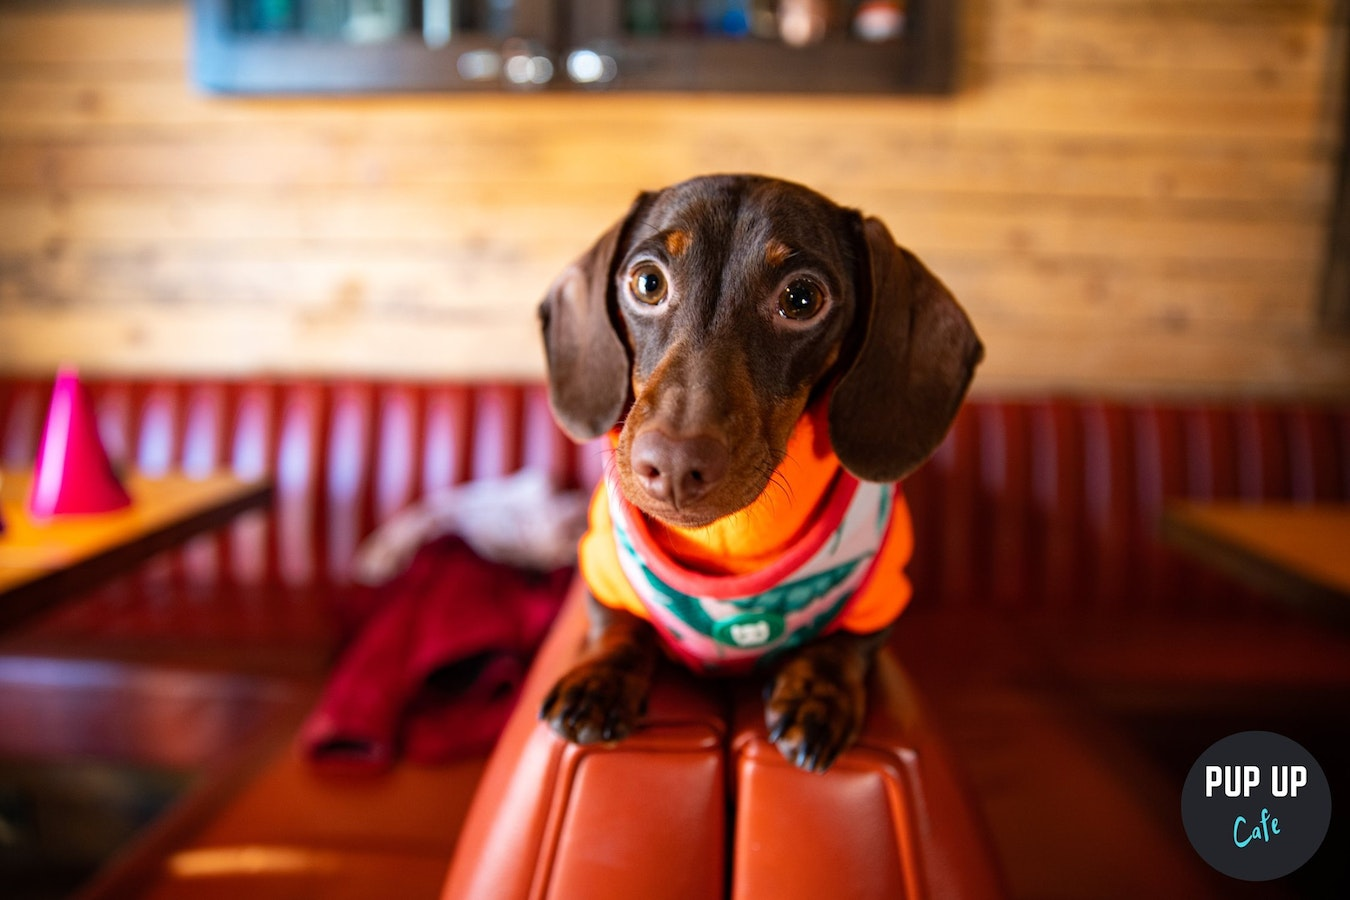 Dachshund Pup Up Cafe – Liverpool